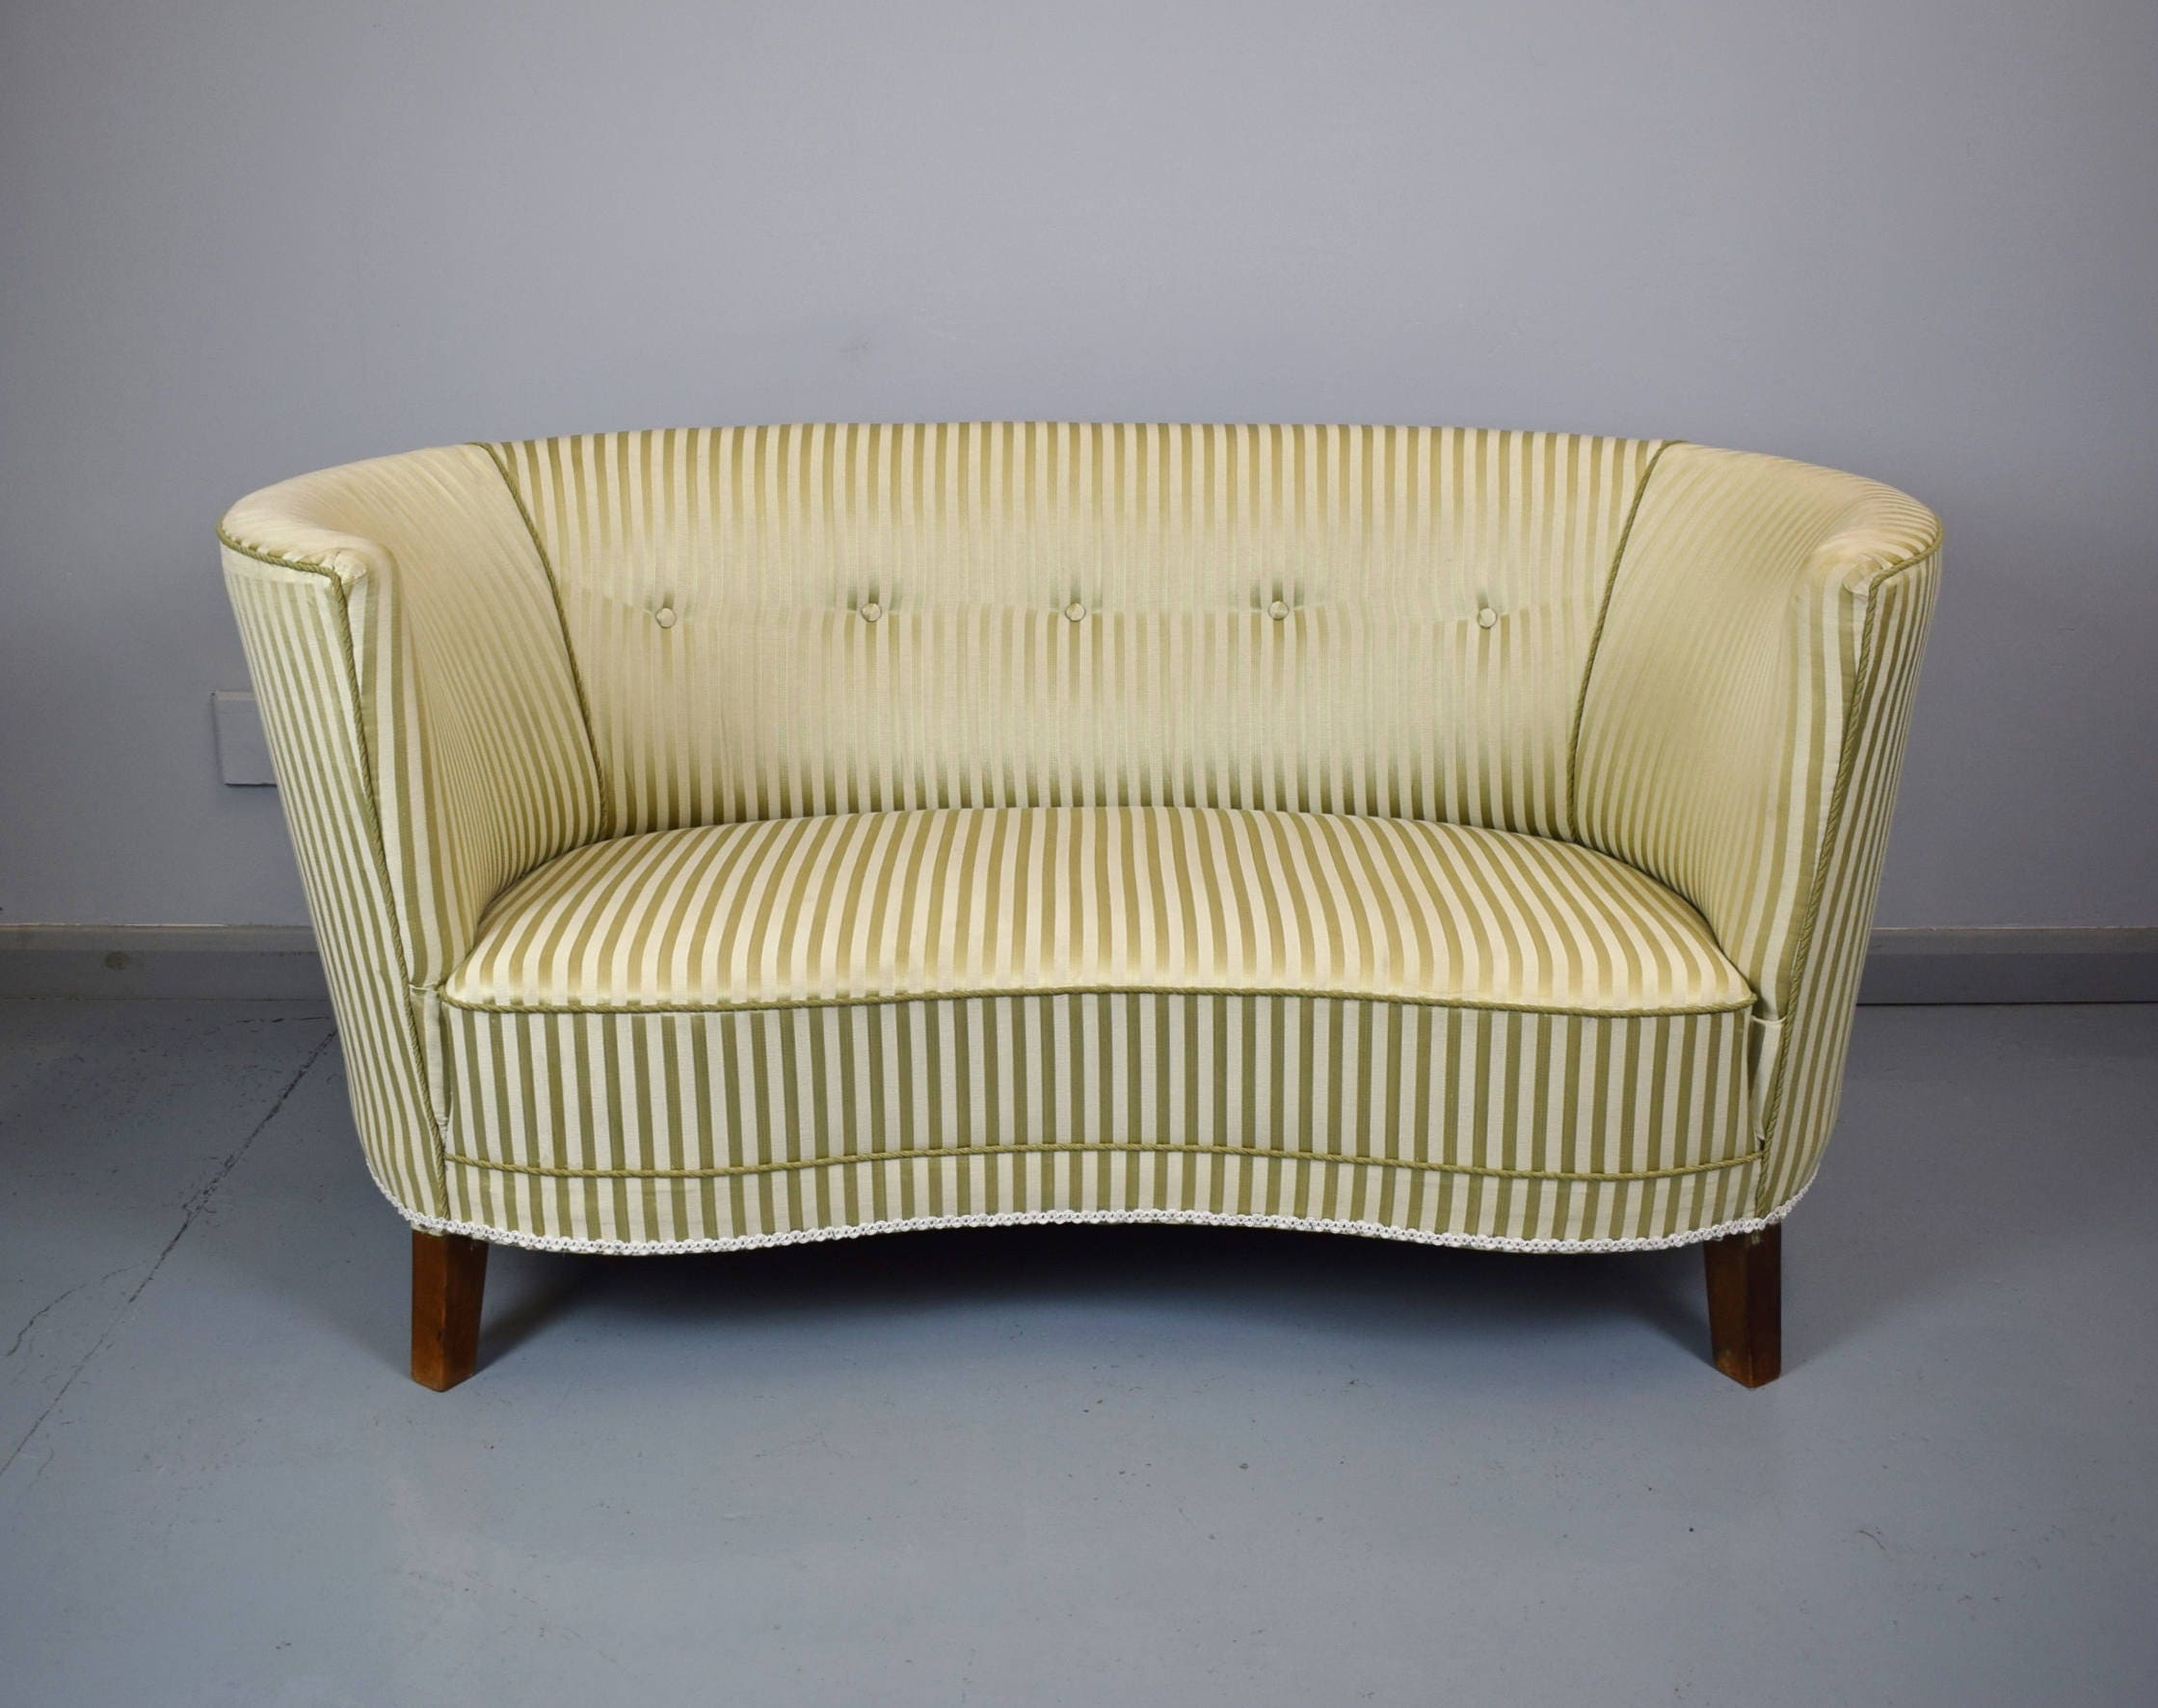 Art Deco Mid Century Vintage Danish Two Seater Banana Sofa Loveseat Couch 1940s